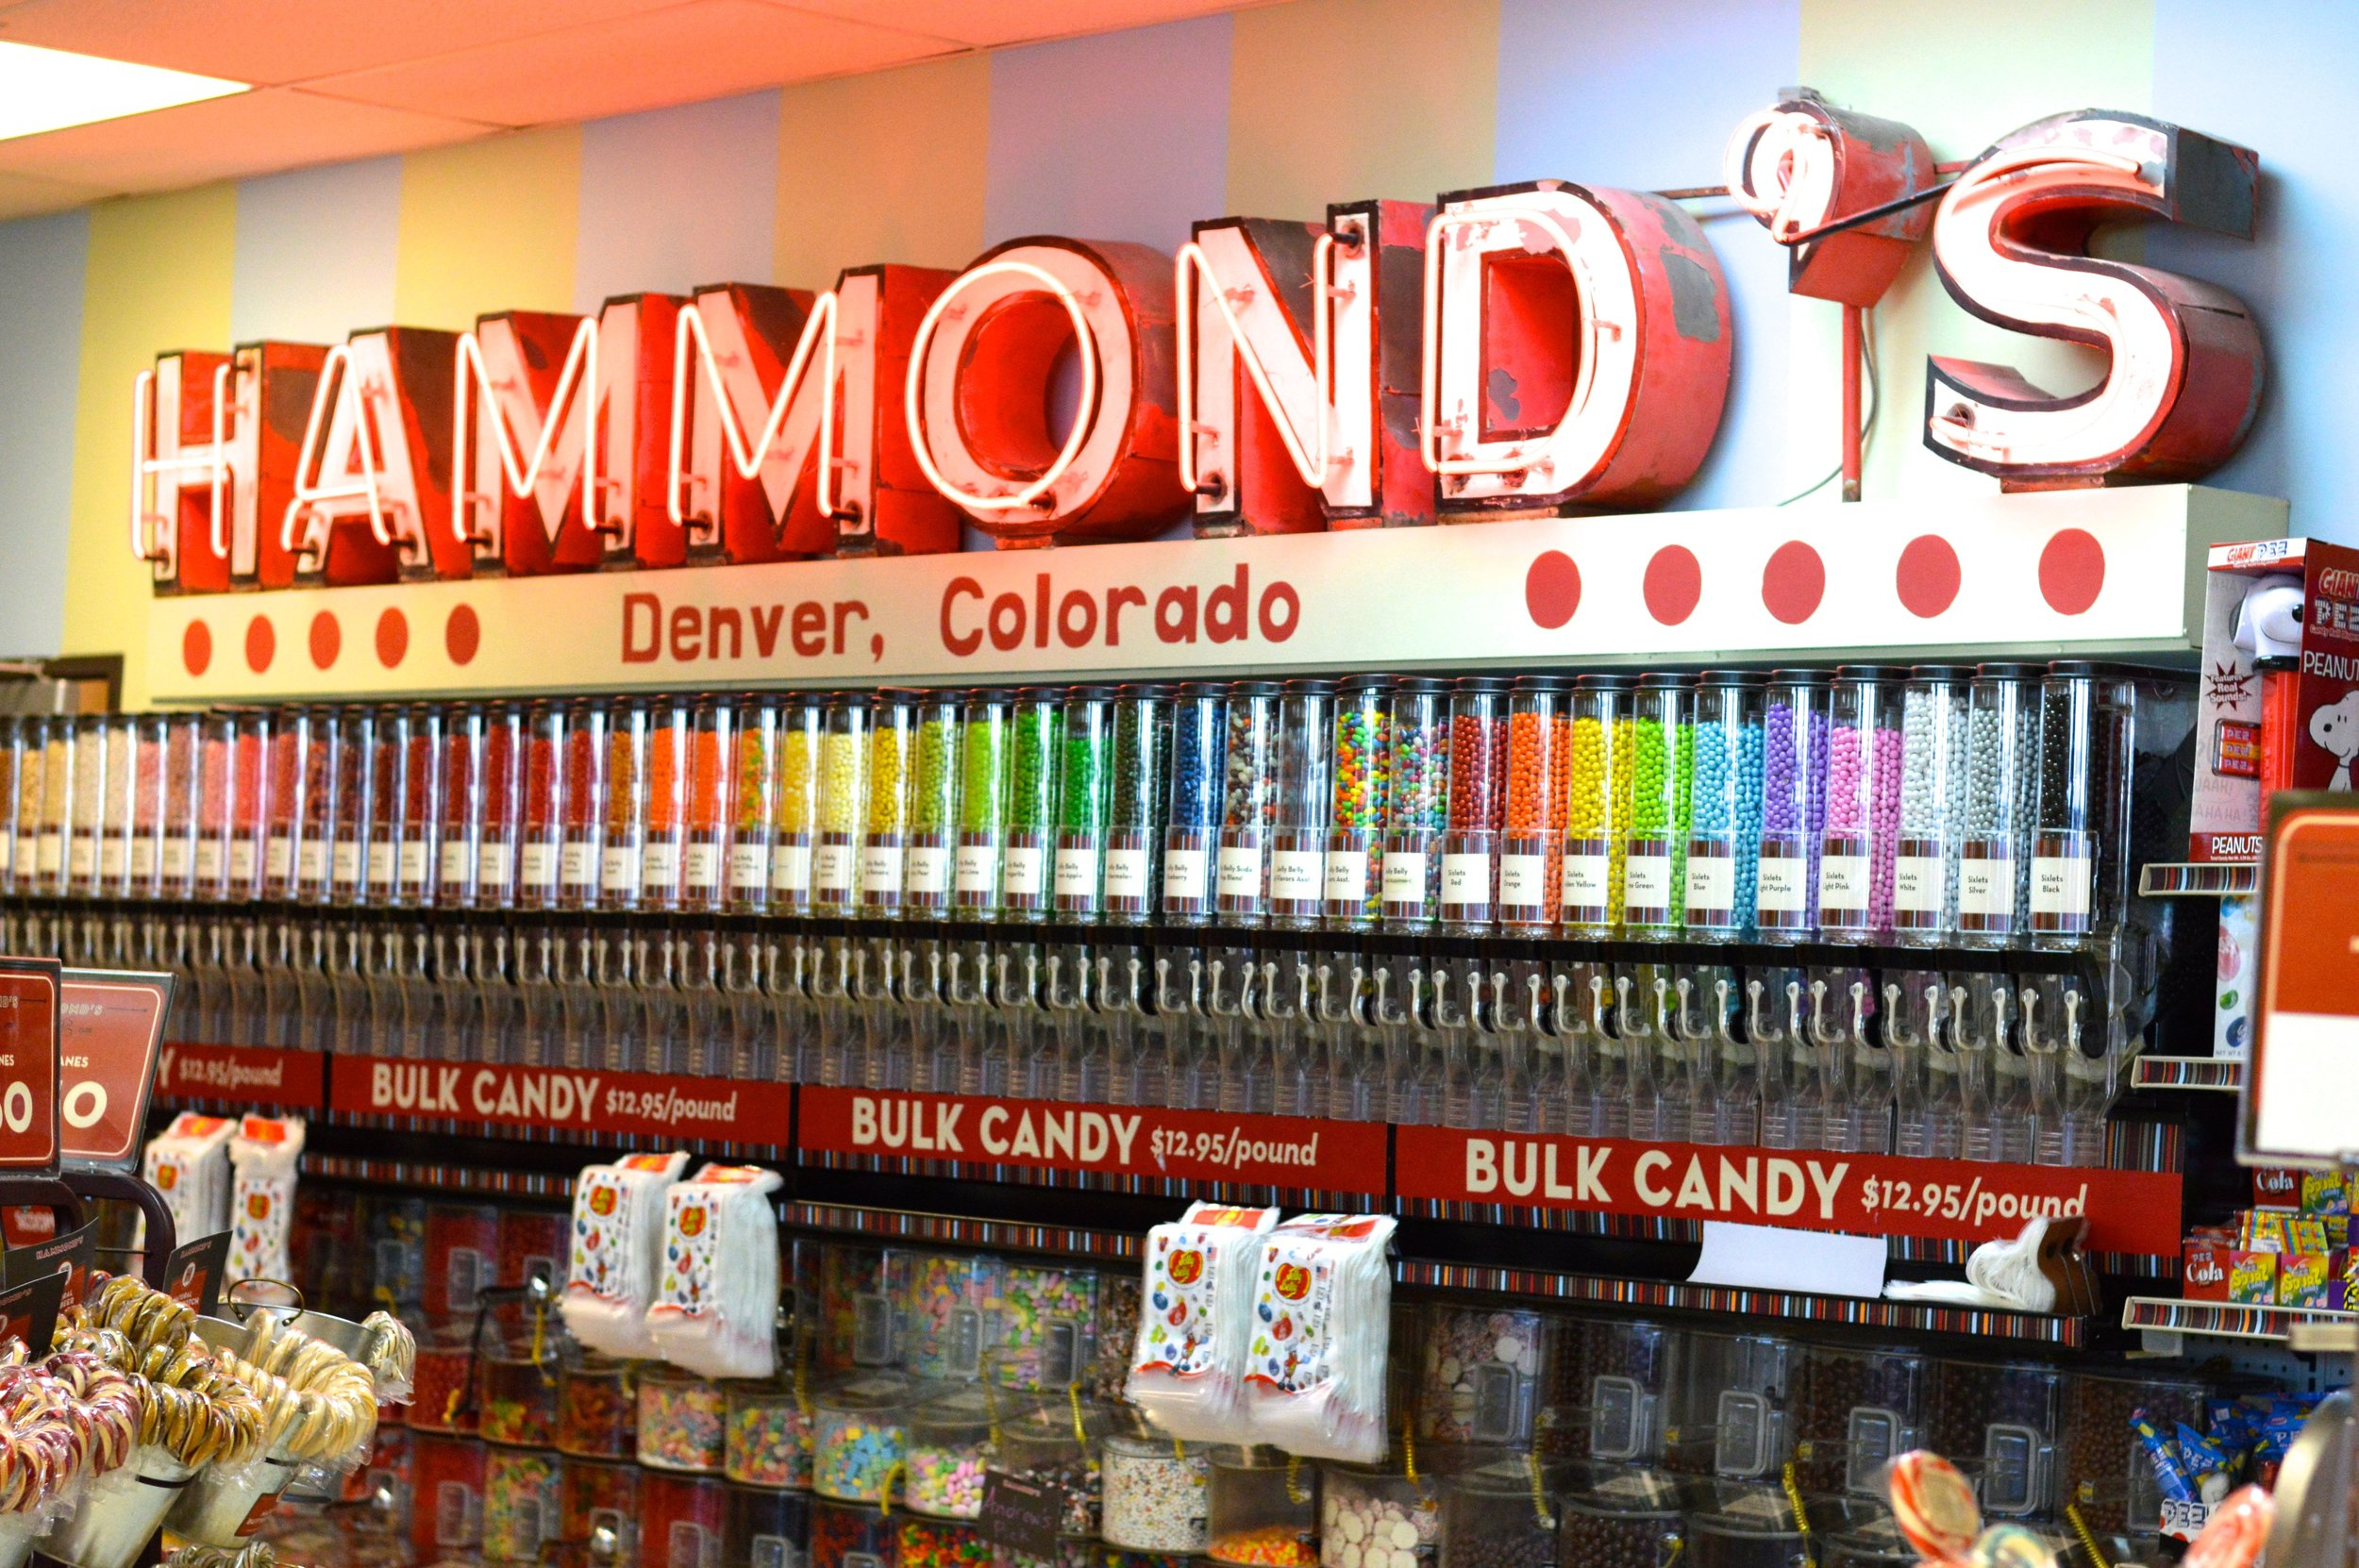 Hammond's Candy Factory Tour Denver 39.jpg